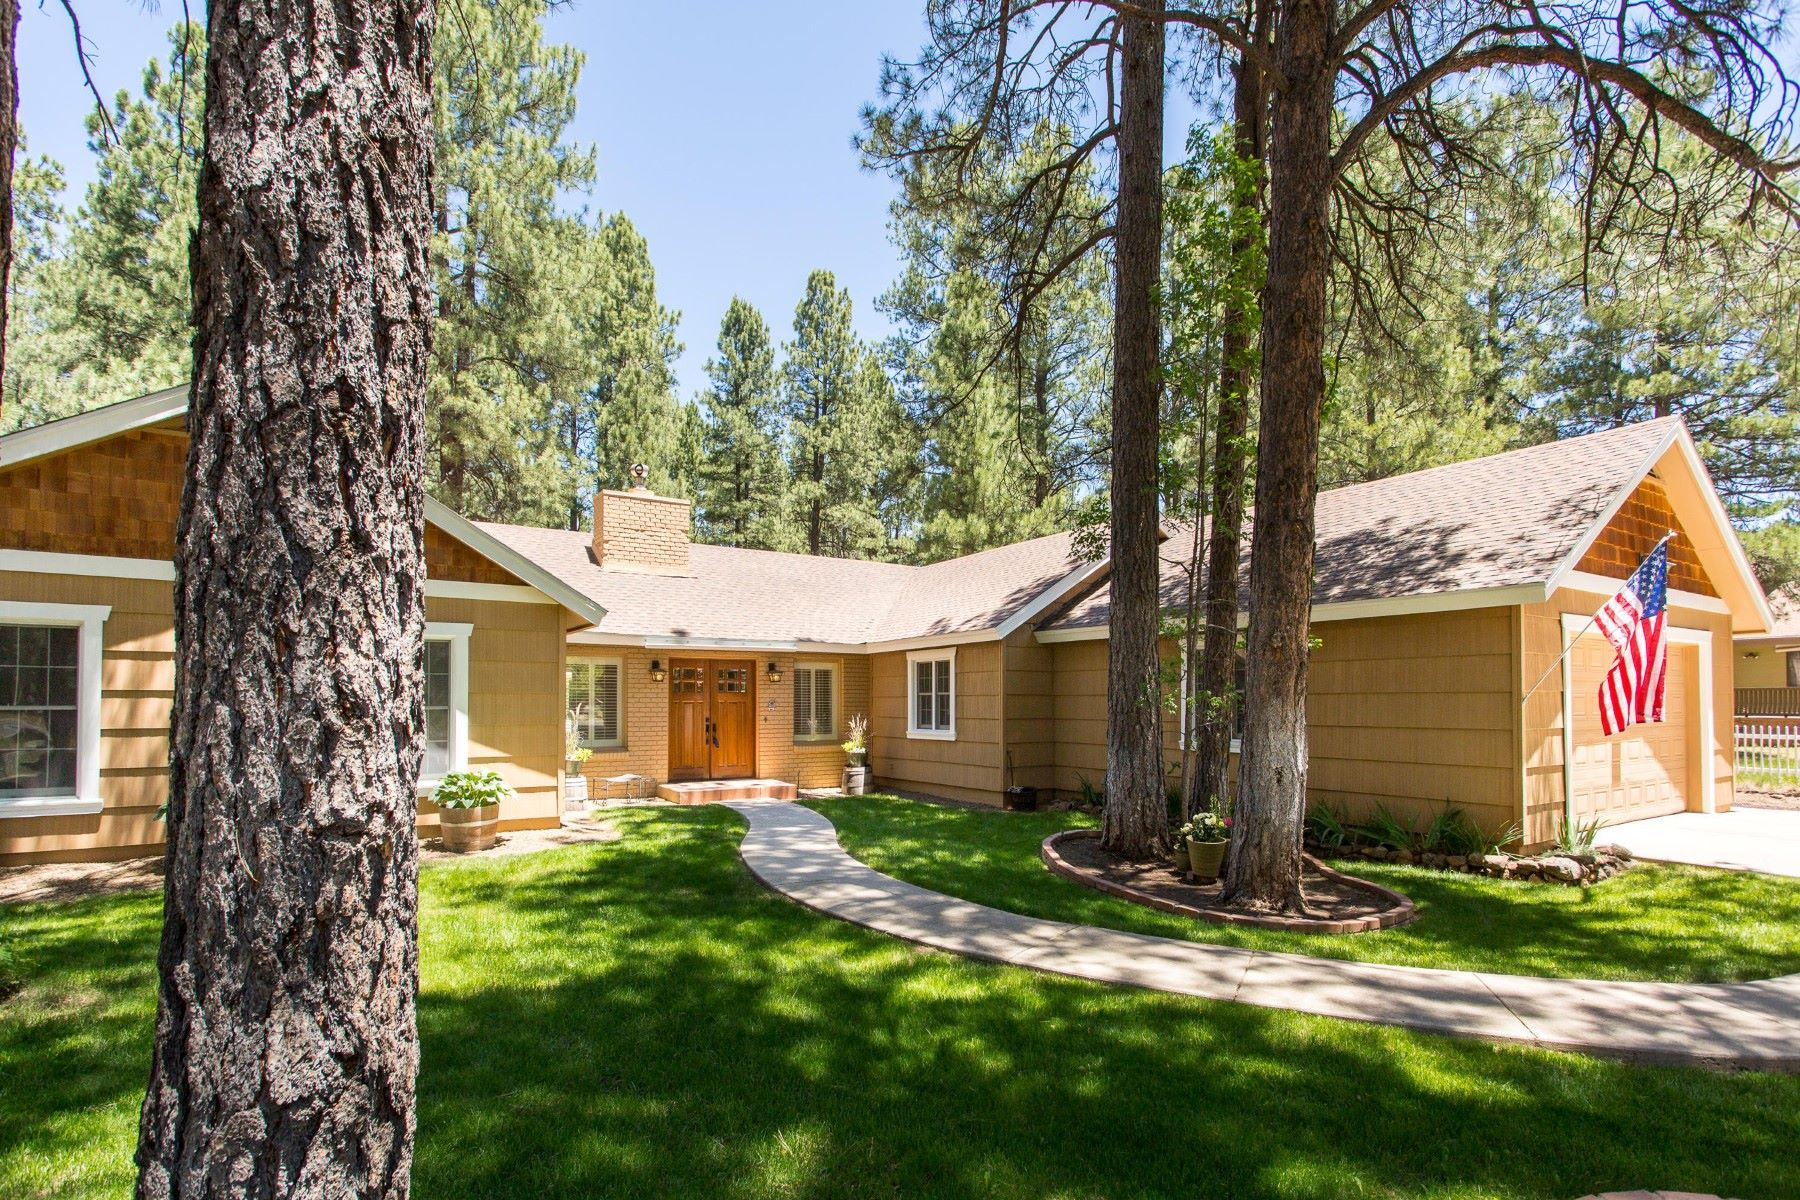 Single Family Home for Sale at Single level family home surrounded by mature Ponderosa Pines 1400 N Rockridge Rd Flagstaff, Arizona, 86001 United States